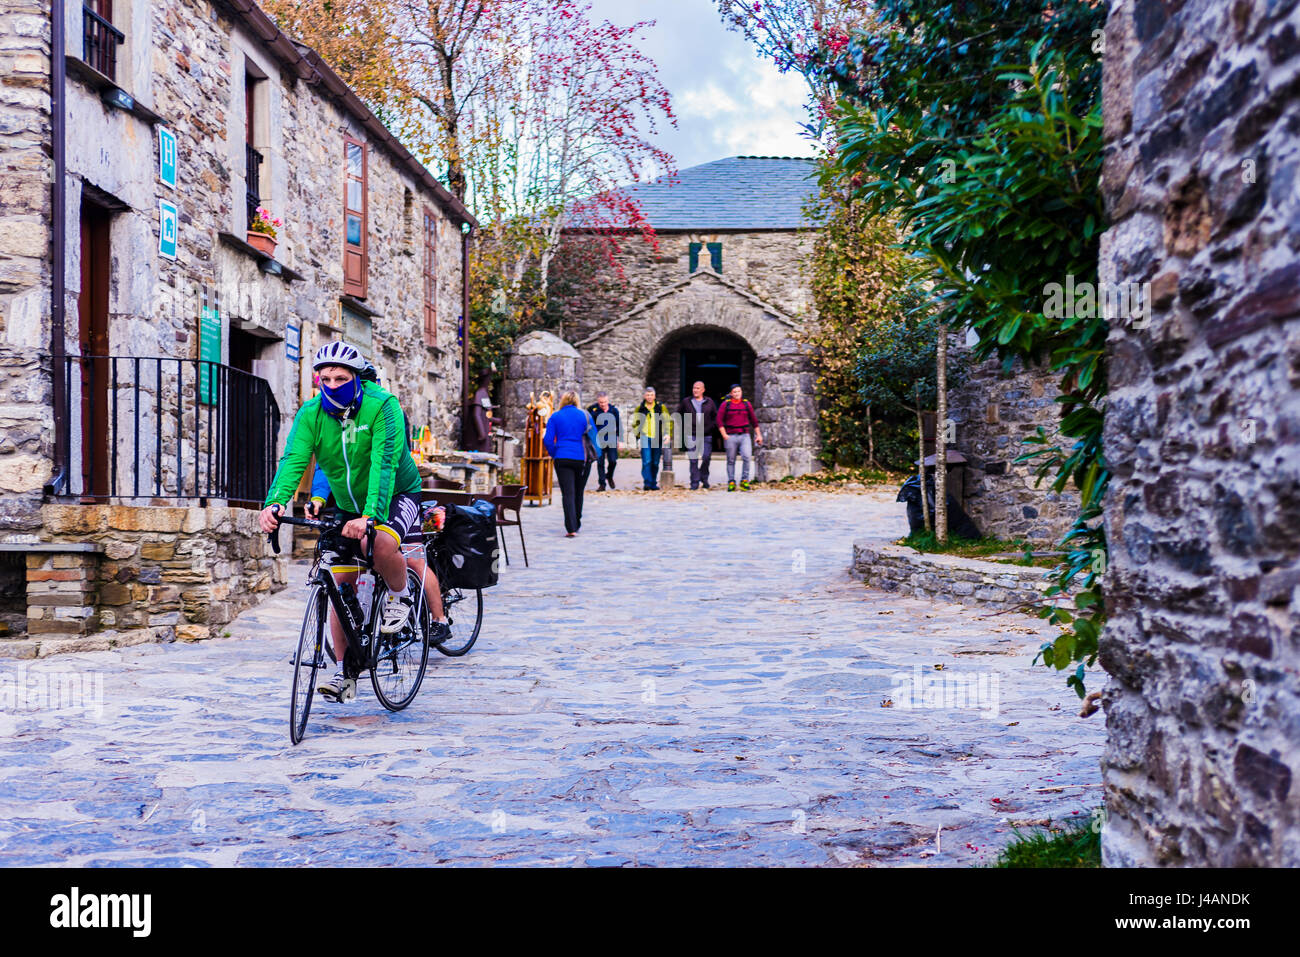 Pilgrims doing the Way of St. James. O Cebreiro. Pedrafita do Cebreiro,Lugo, Galicia, Spain, Europe Stock Photo